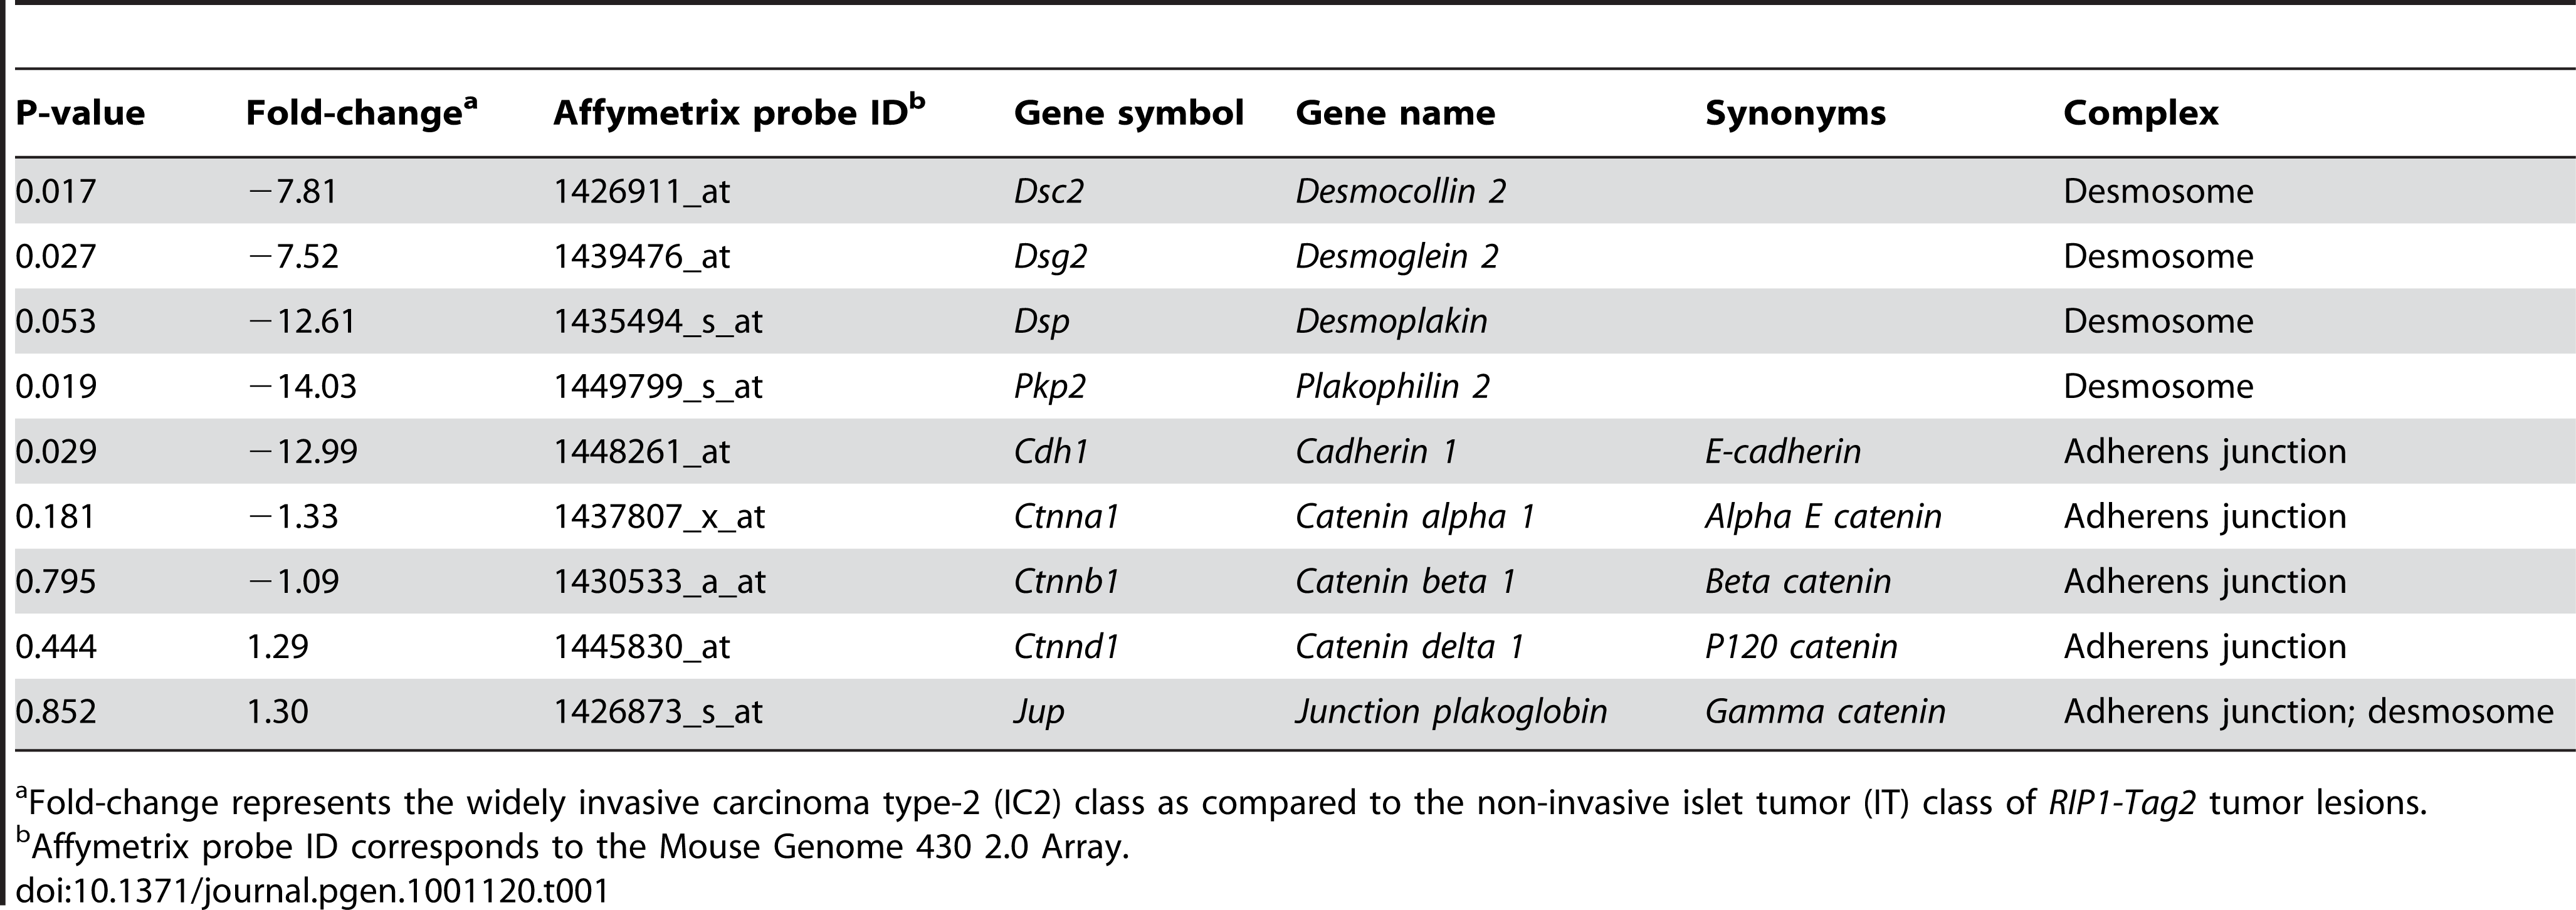 Summary of Microarray Results for Components of Desmosomes and Adherens Junctions.